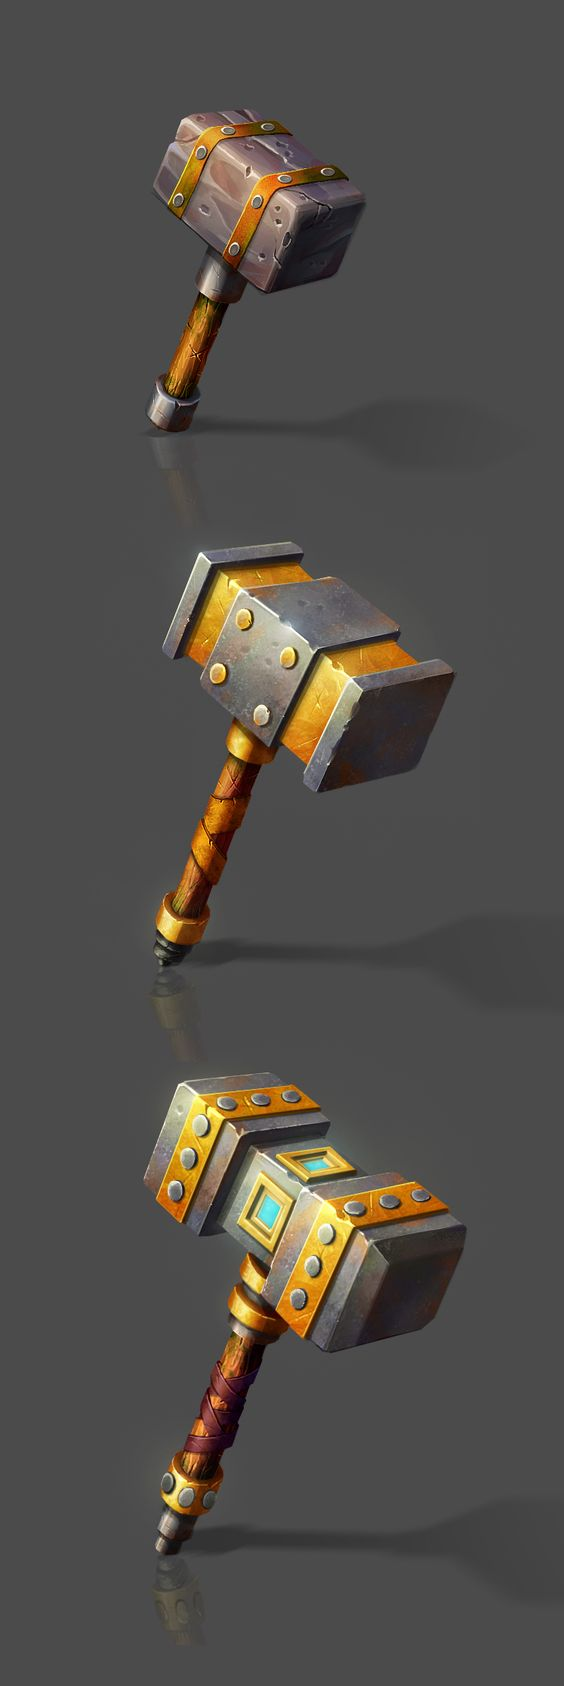 Props on Behance #weapon #design #hammer